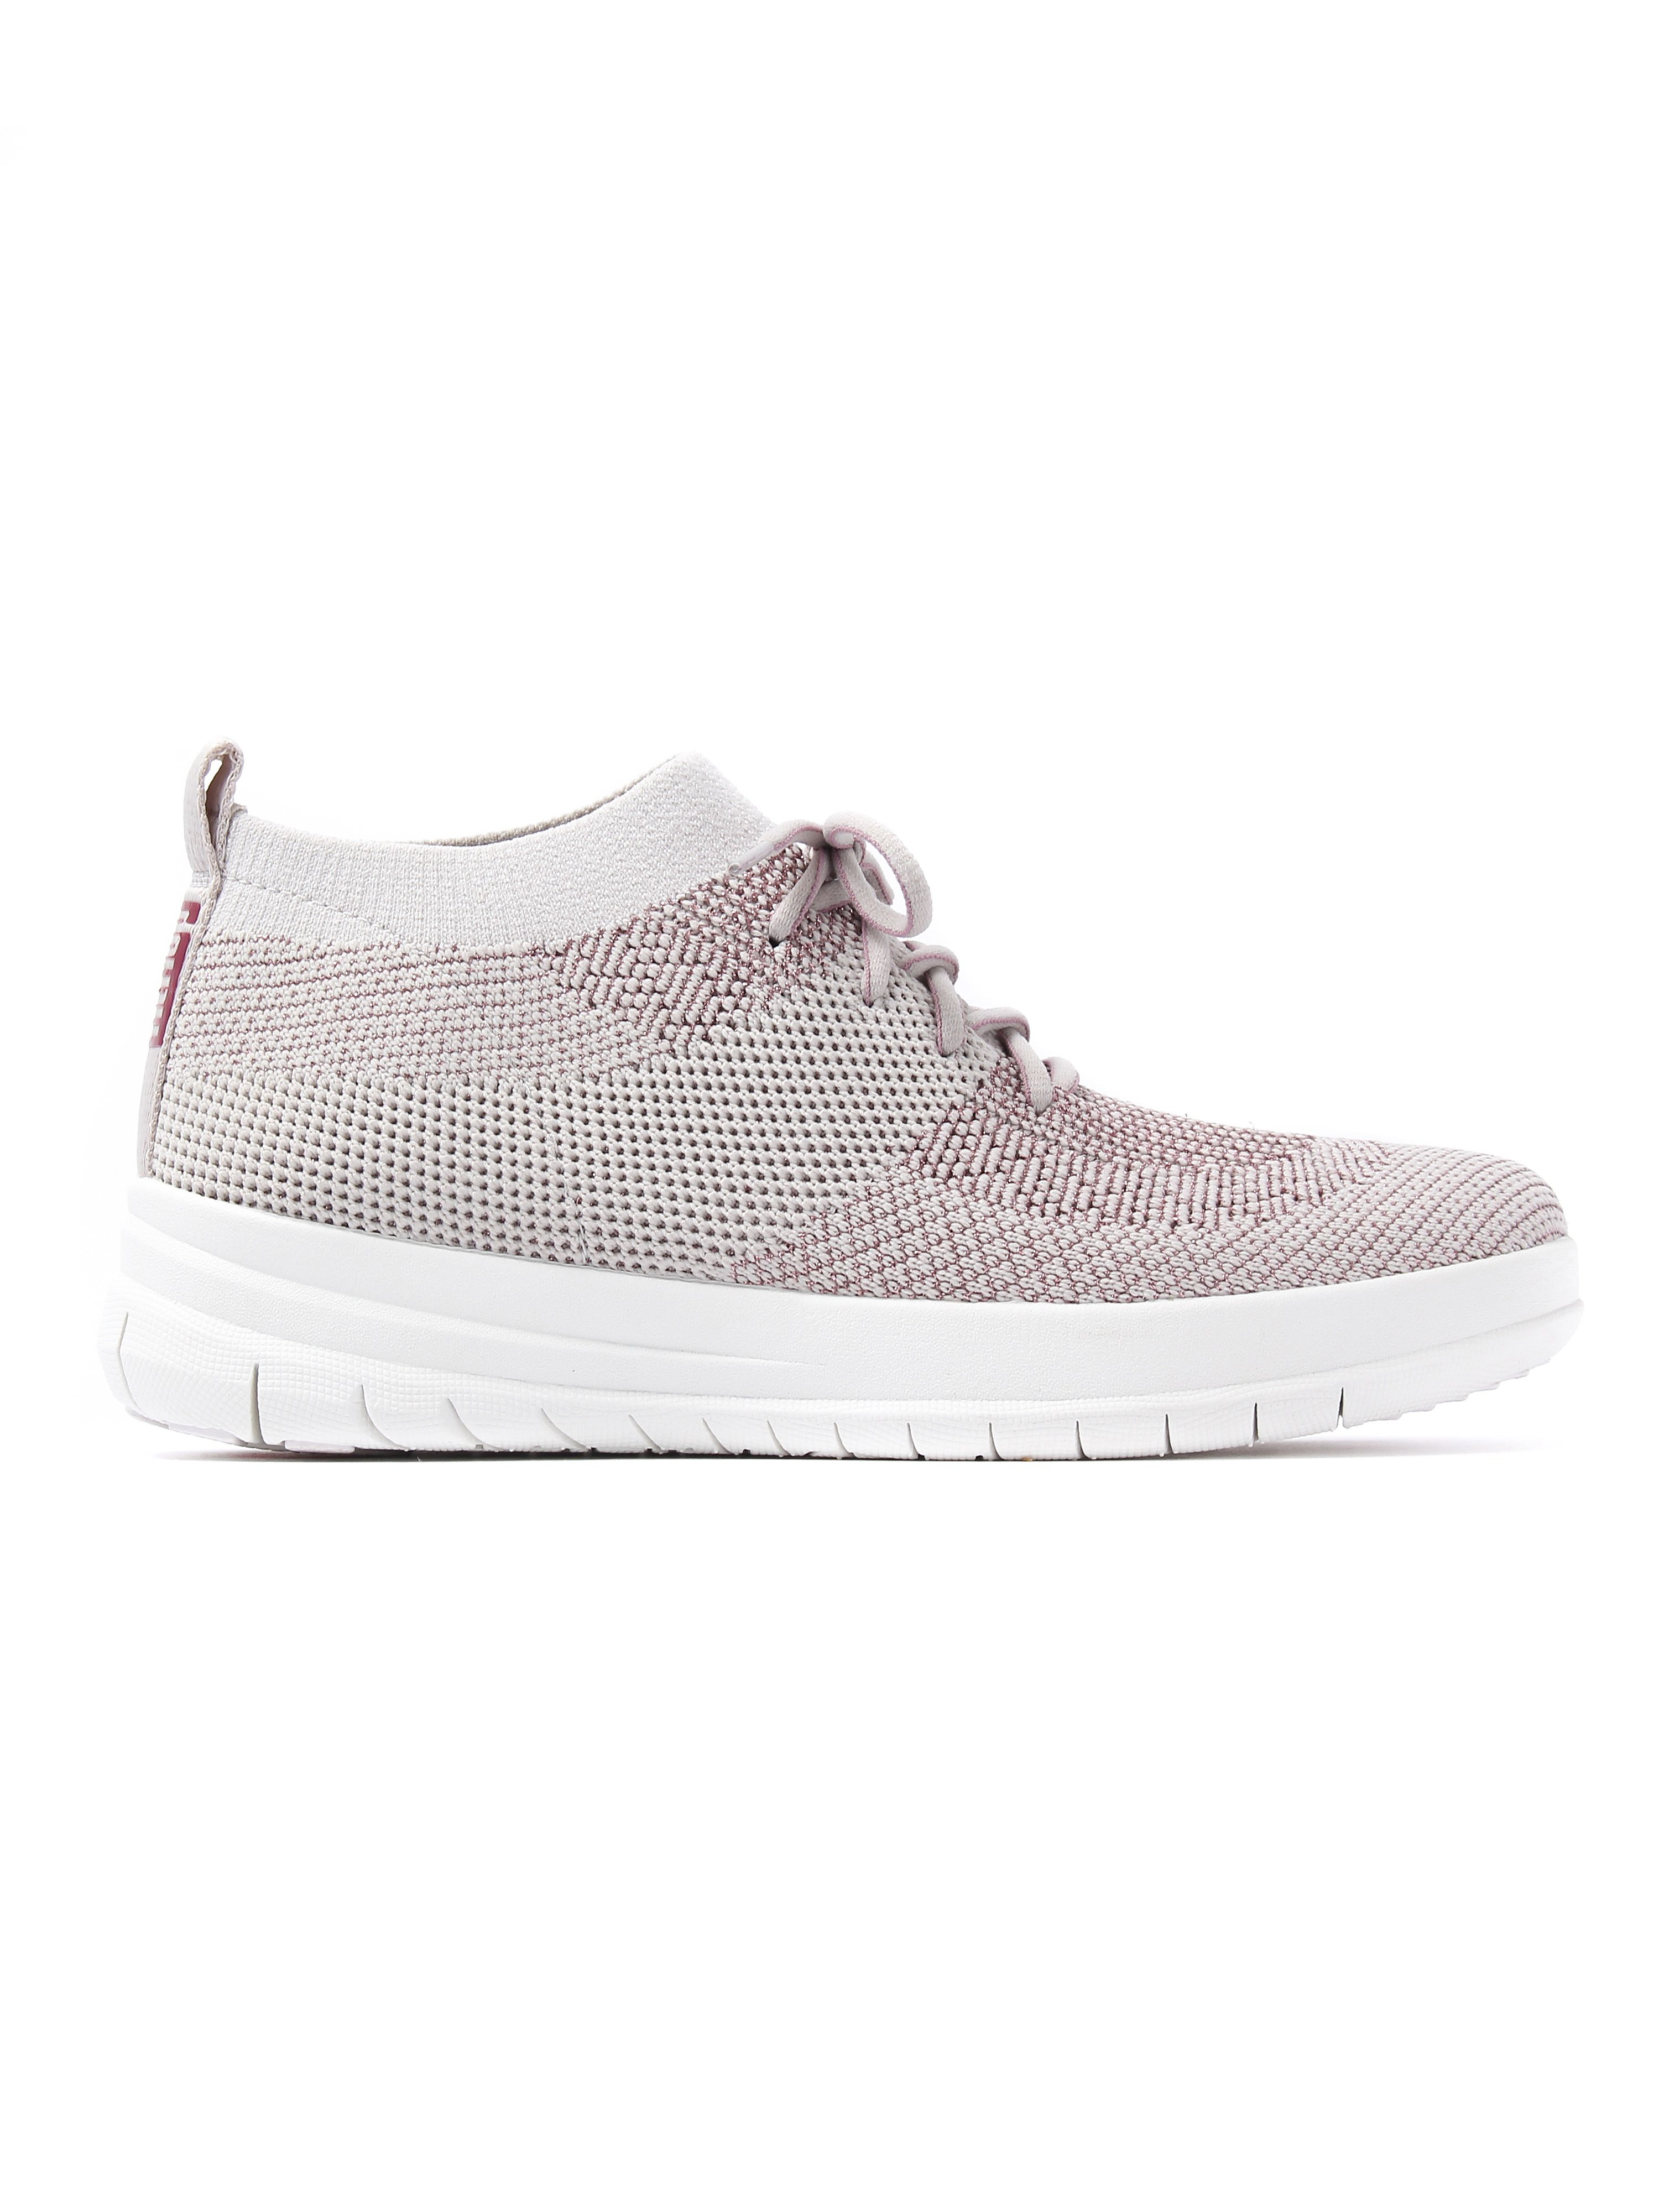 FitFlop Women's Uberknit Metallic Fleck High Top Trainers - Stone & Rose Gold